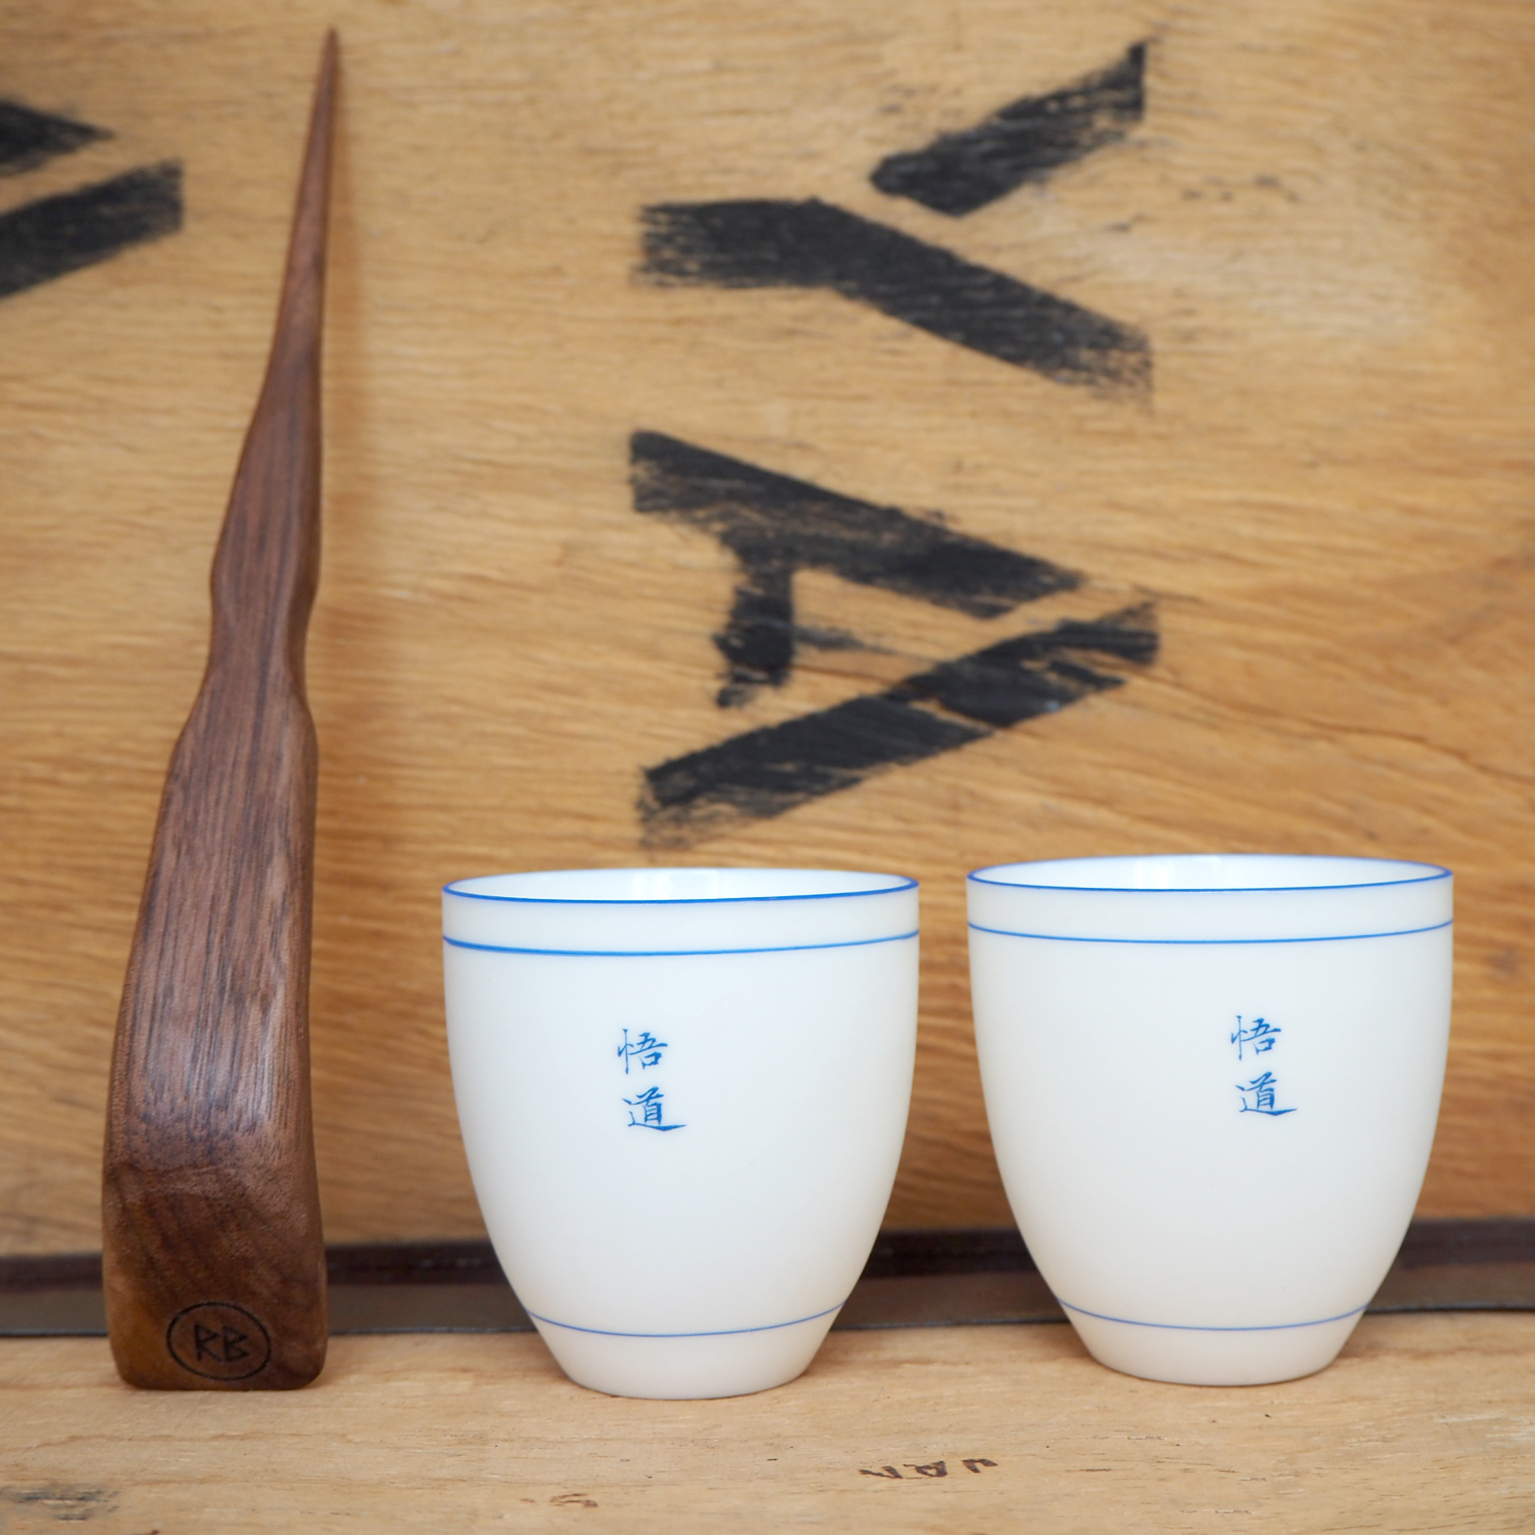 Walnut Tea Needle For Gong Fu Ceremony by Rosie Brewer